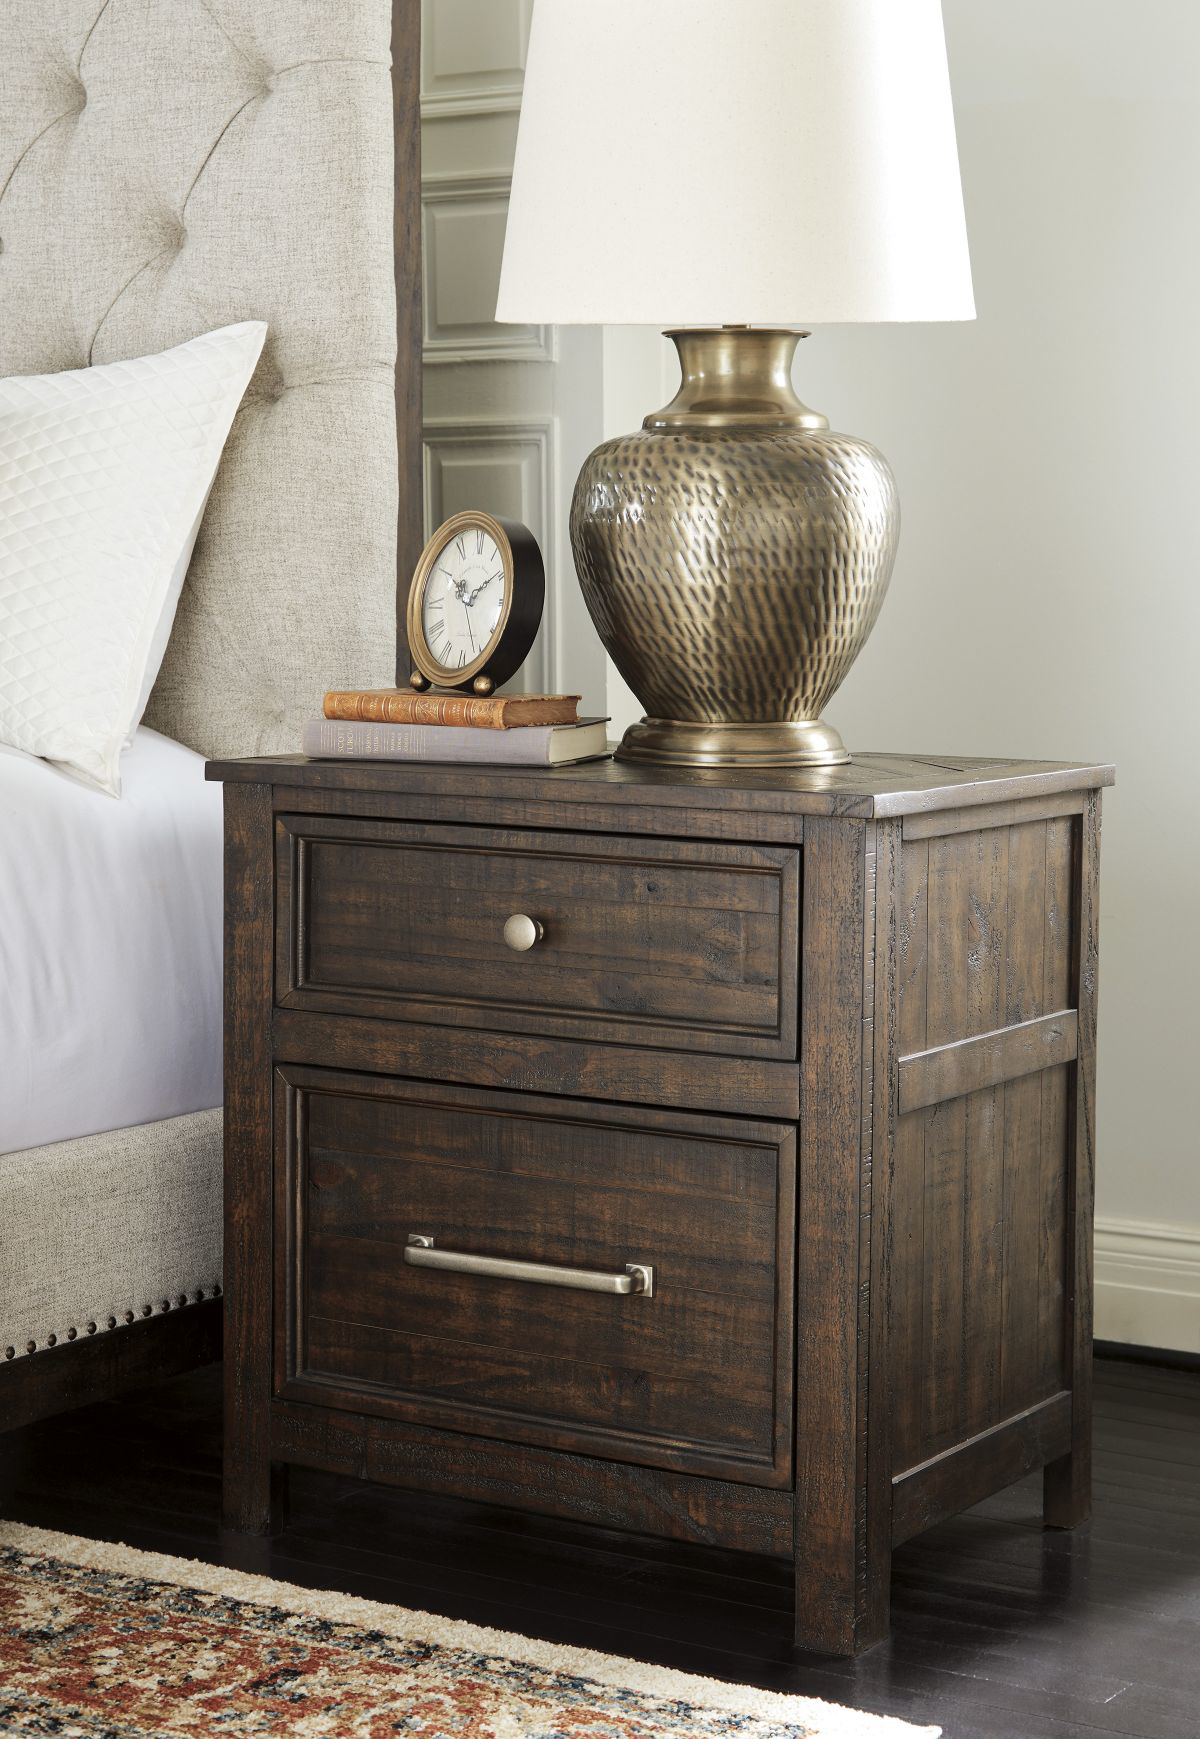 Picture of Hillcott Nightstand